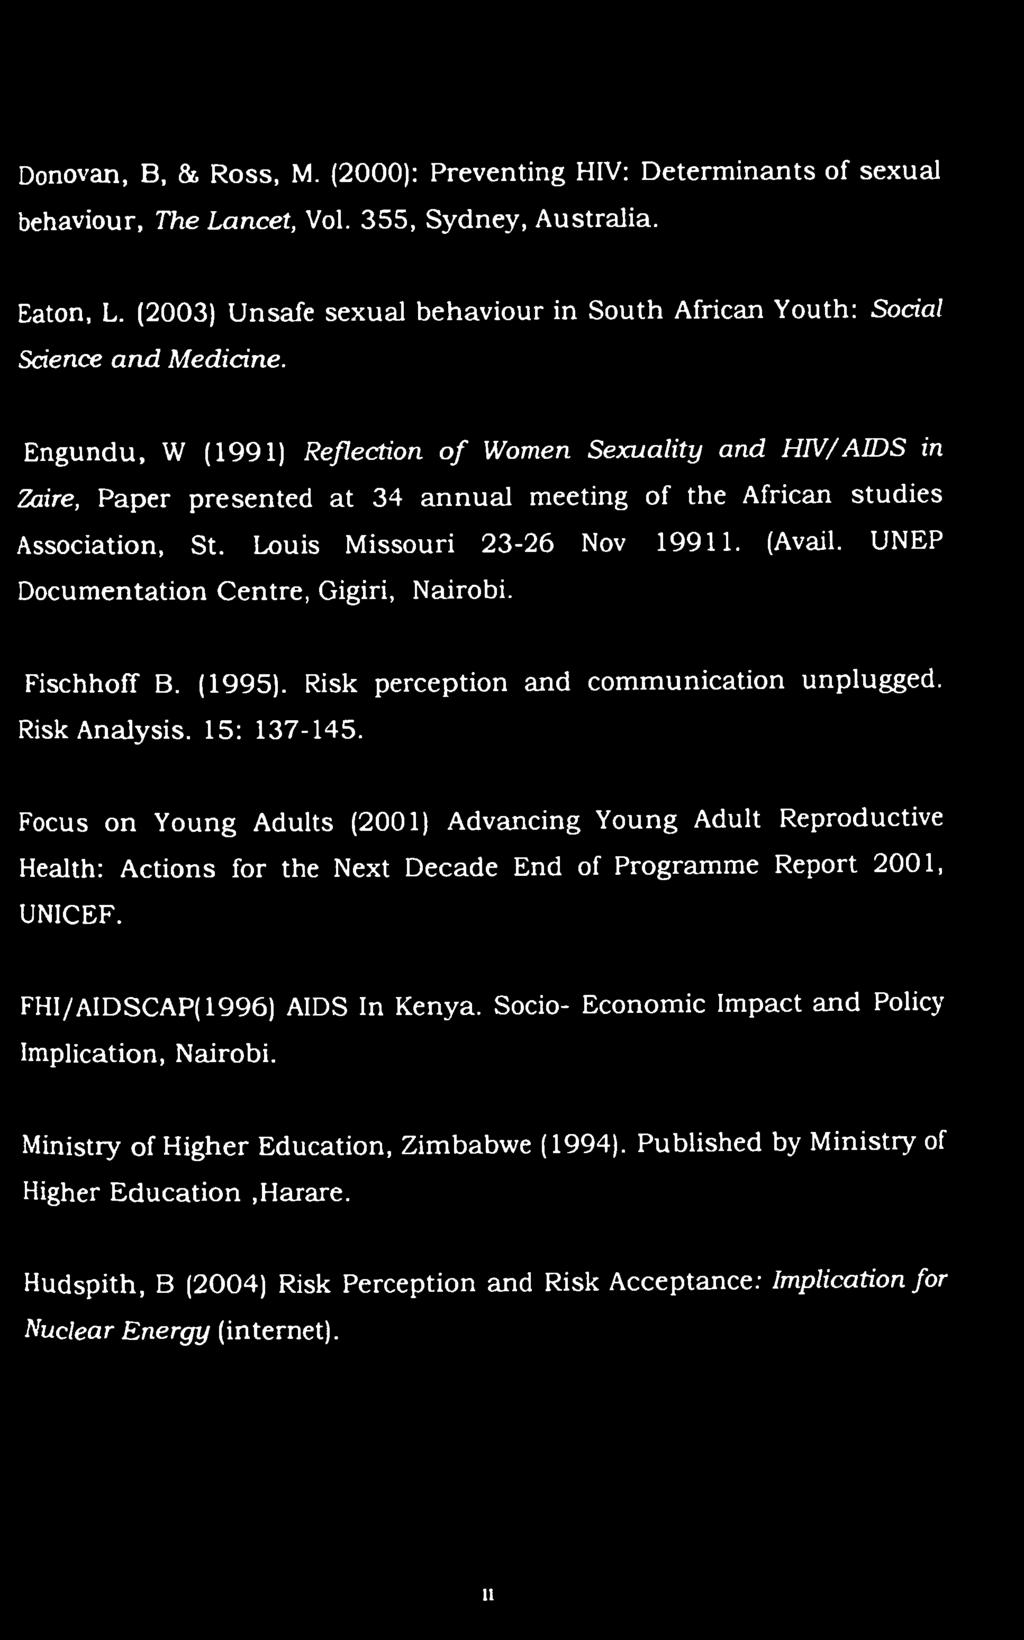 Engundu, W (1991) Reflection o f Women Sexuality and HIV/AIDS in Zaire, Paper presented at 34 annual meeting of the African studies Association, St. Louis Missouri 23-26 Nov 19911. (Avail.